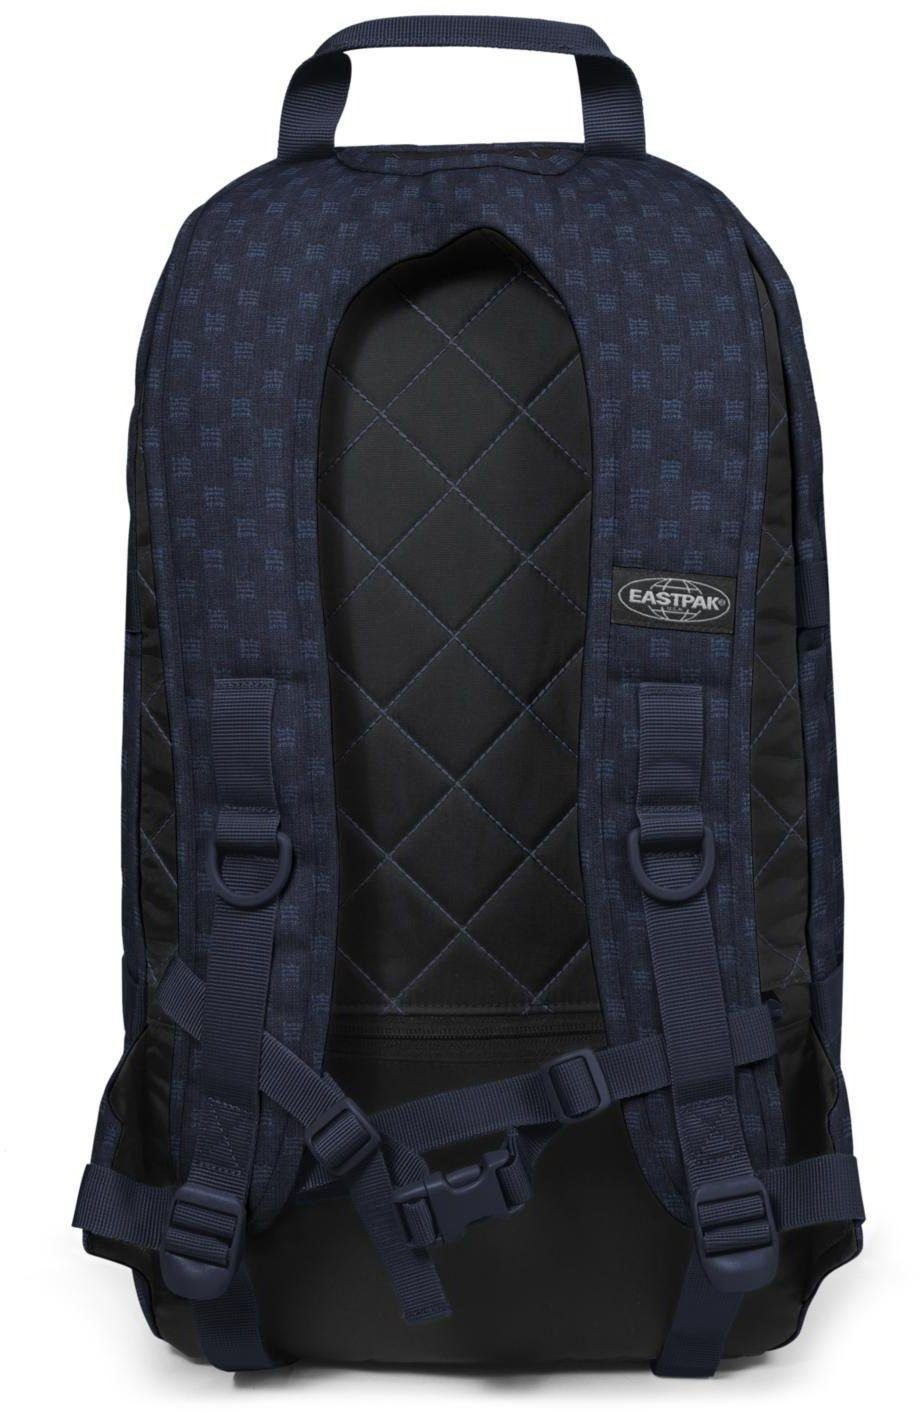 Checks« Denim »evanz Laptopfach Mit Eastpak Rucksack wIqXpAWB